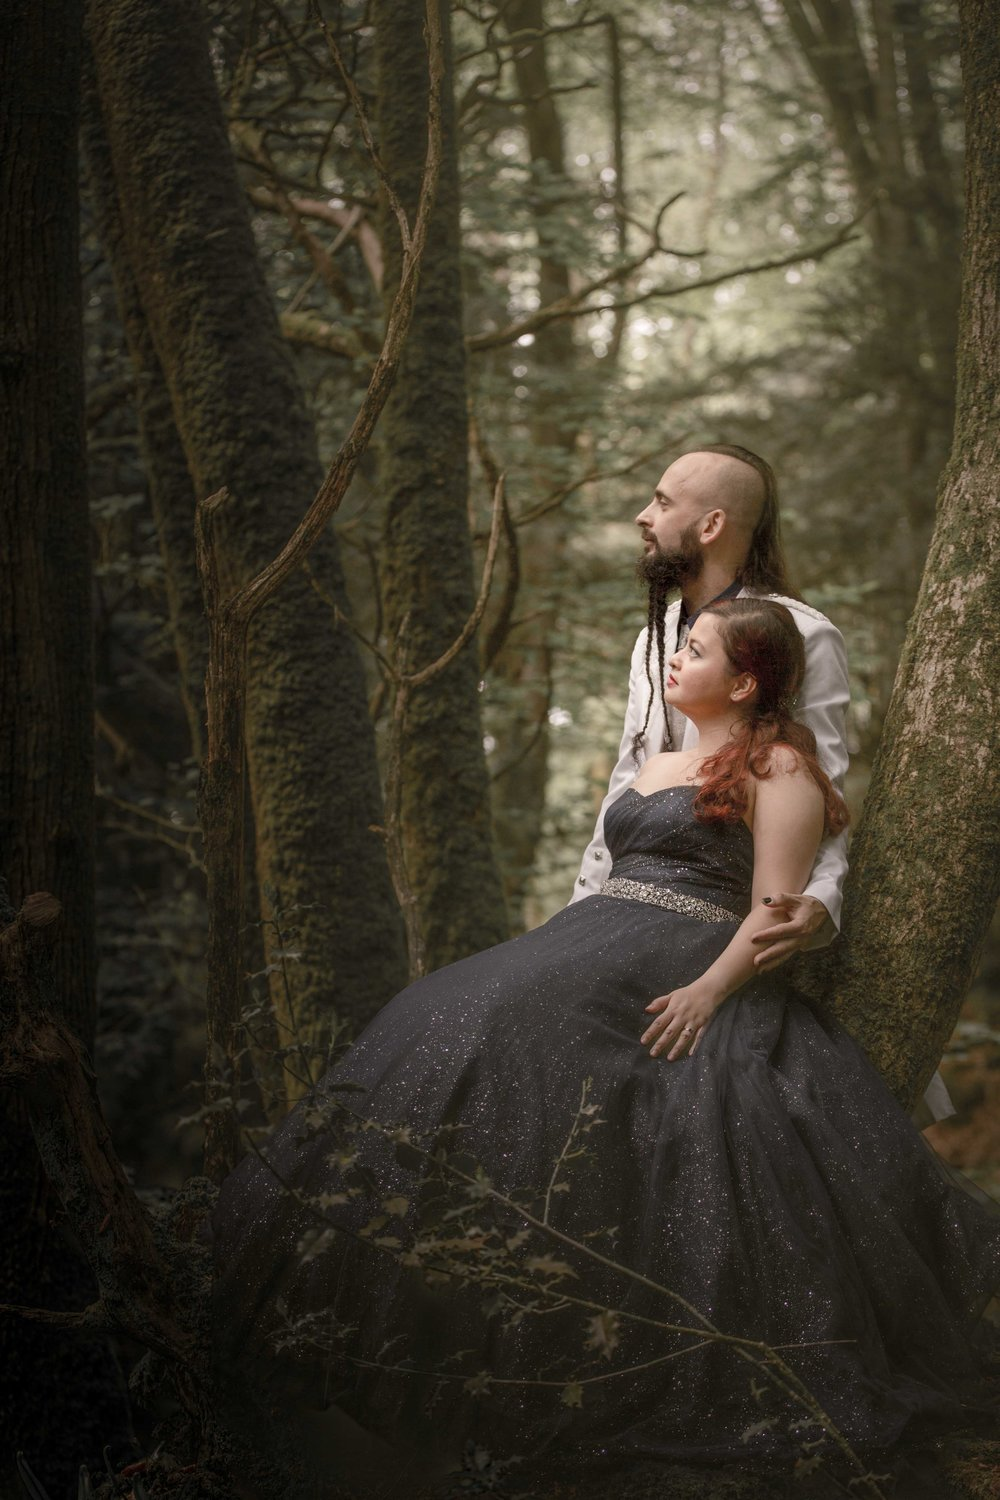 Puzzlewood-fairytale-fairy-forest-wood-prewedding-photoshoot-star-wars-couple-shoot-asian-wedding-photographer-natalia-smith-photography-2.jpg